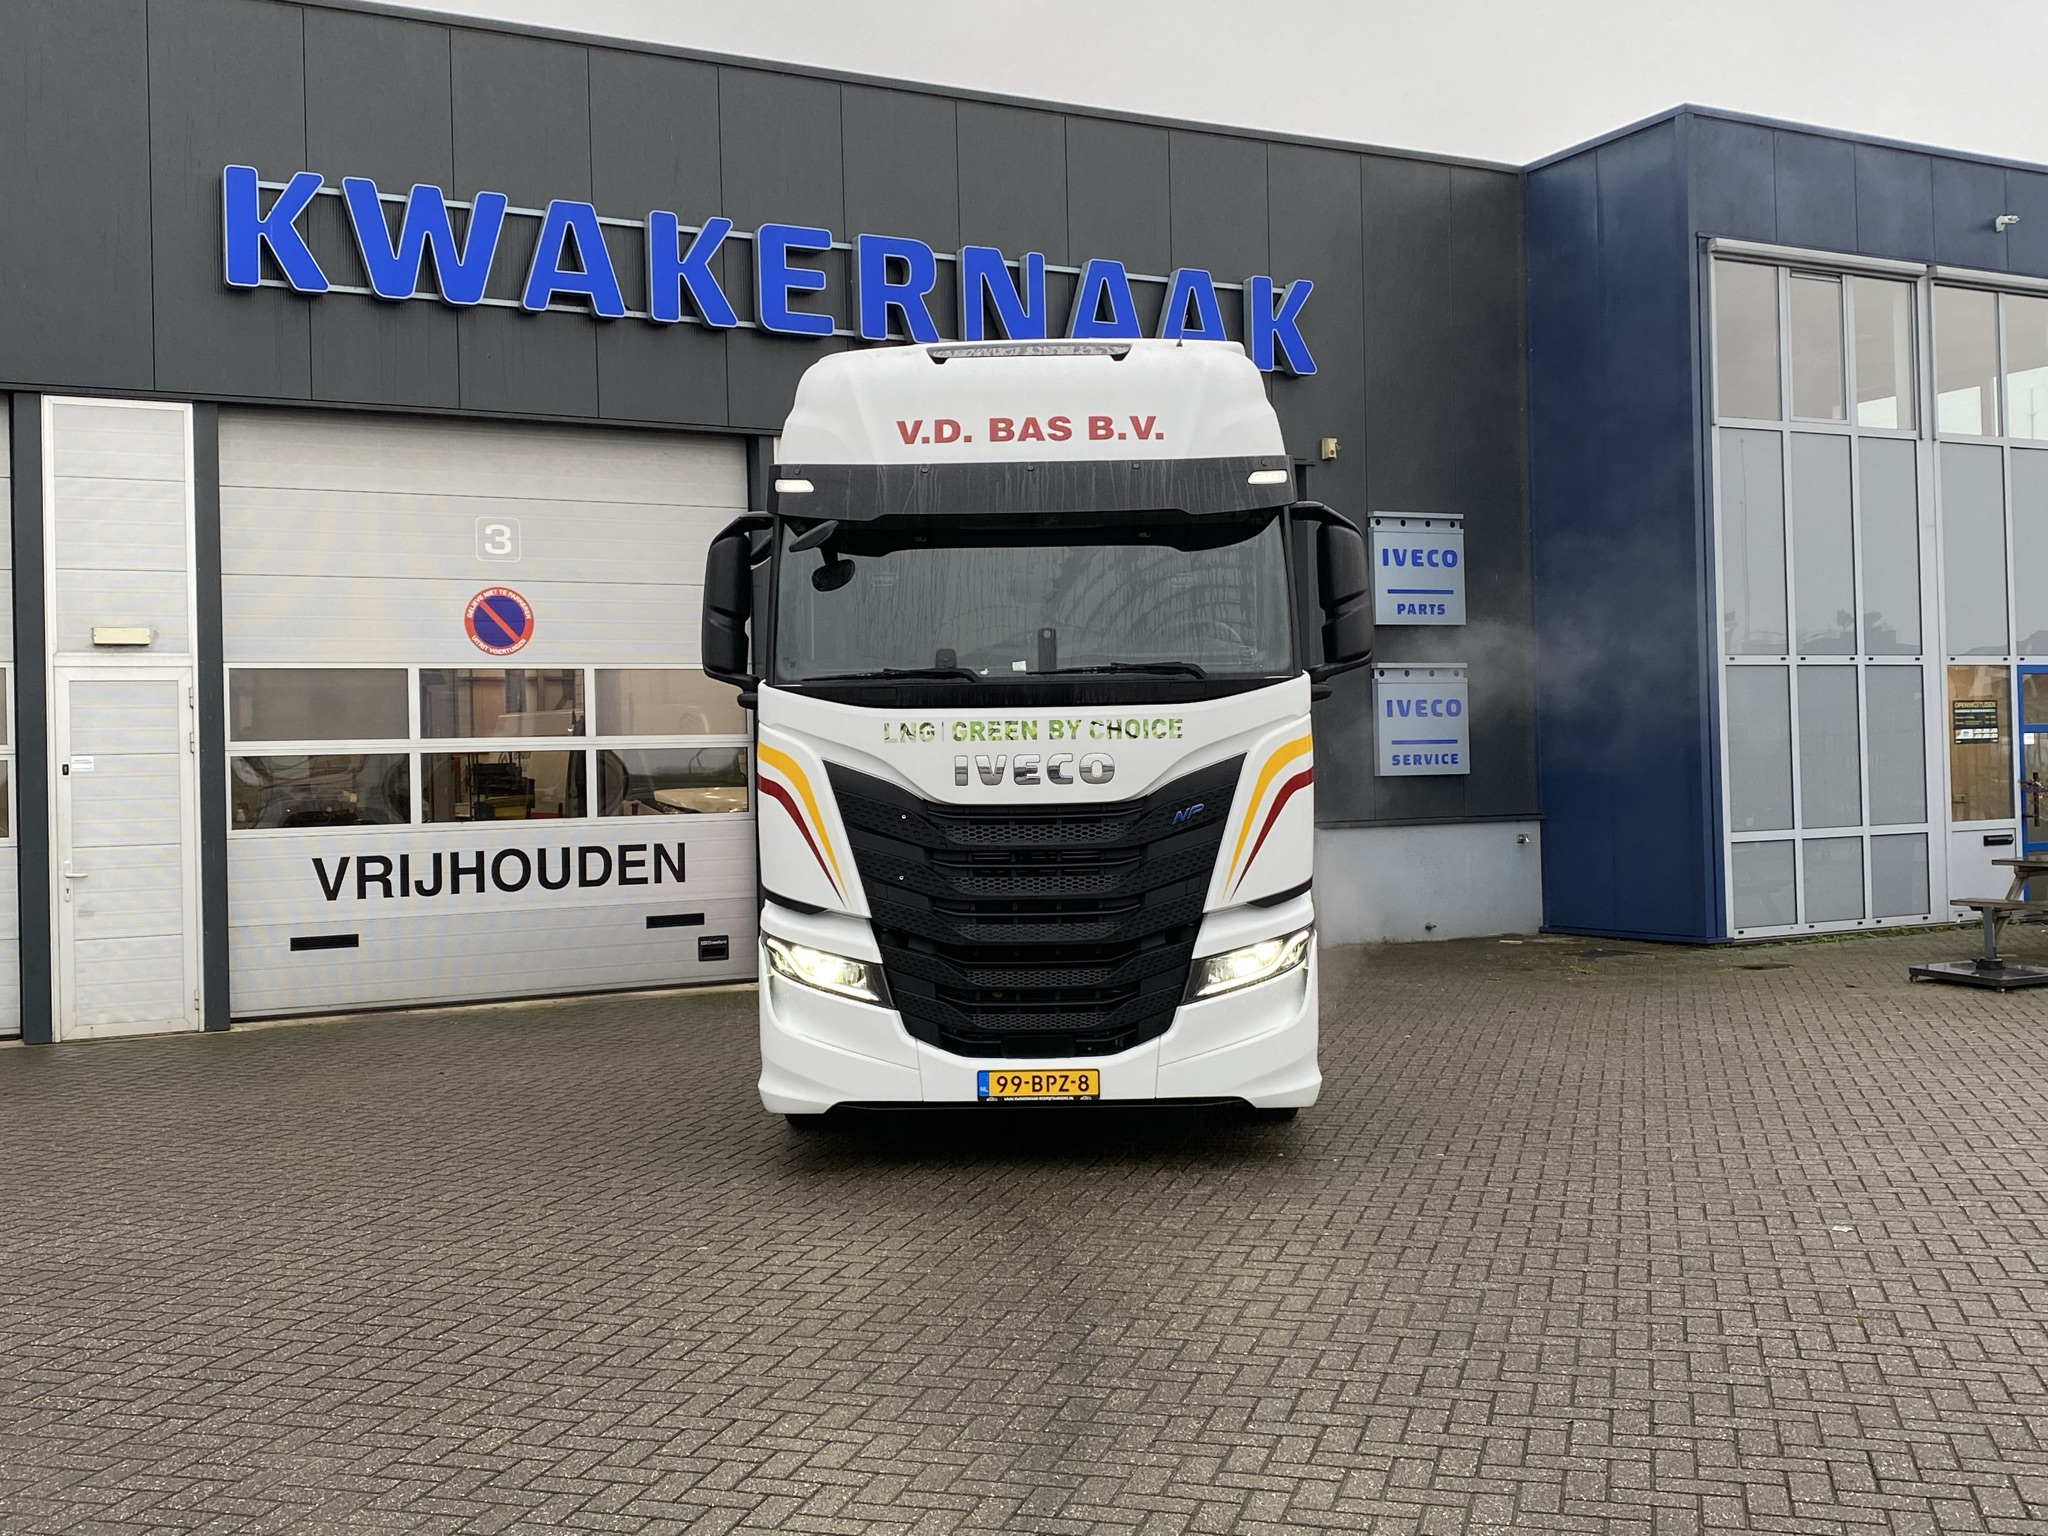 Van der Bas Transport B.V.